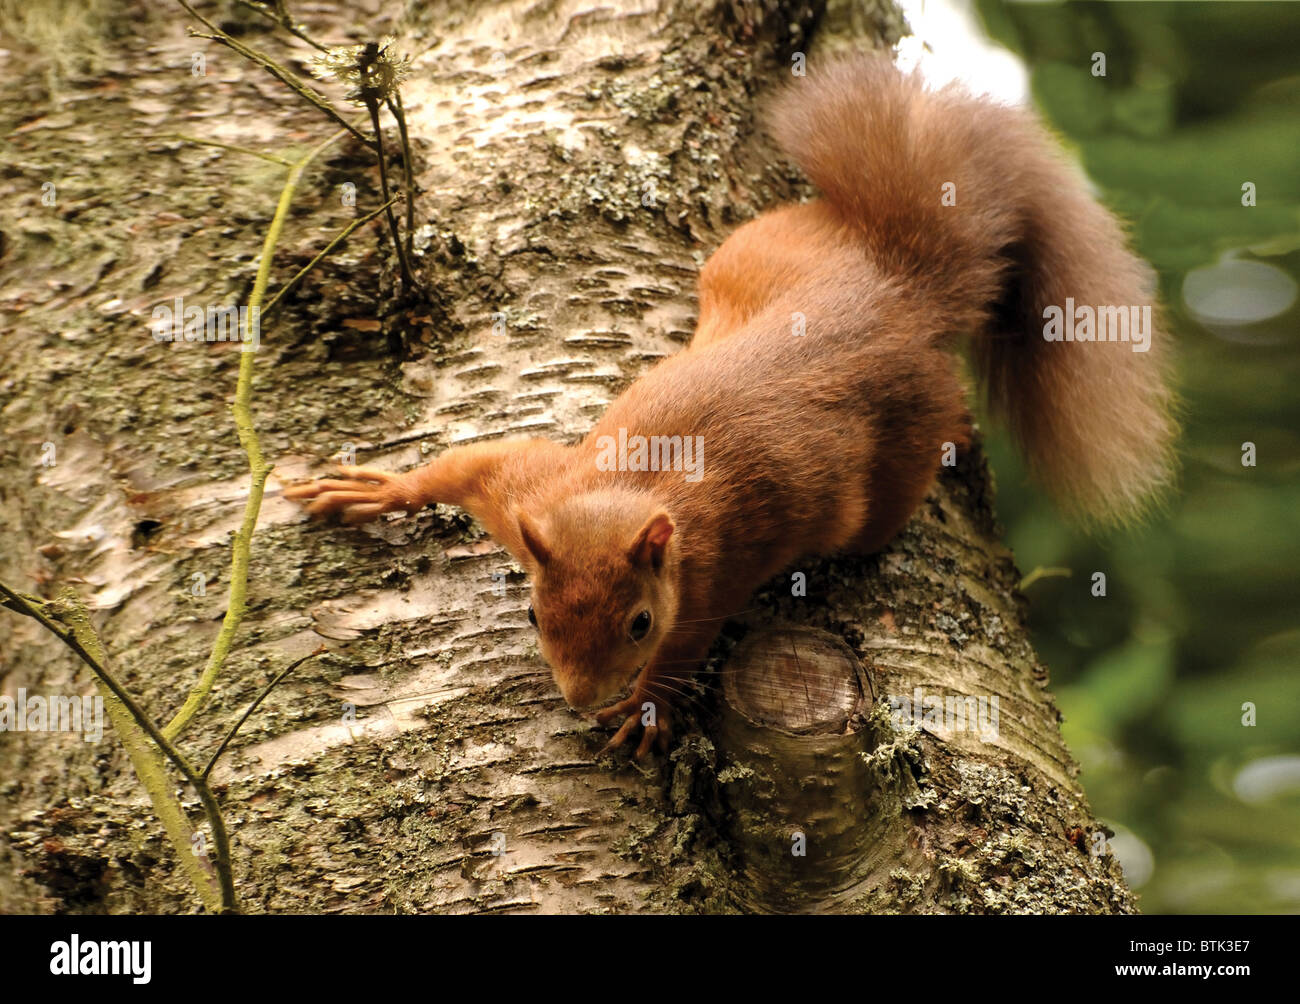 Red Squirrel on Silver Birch Tree - Stock Image